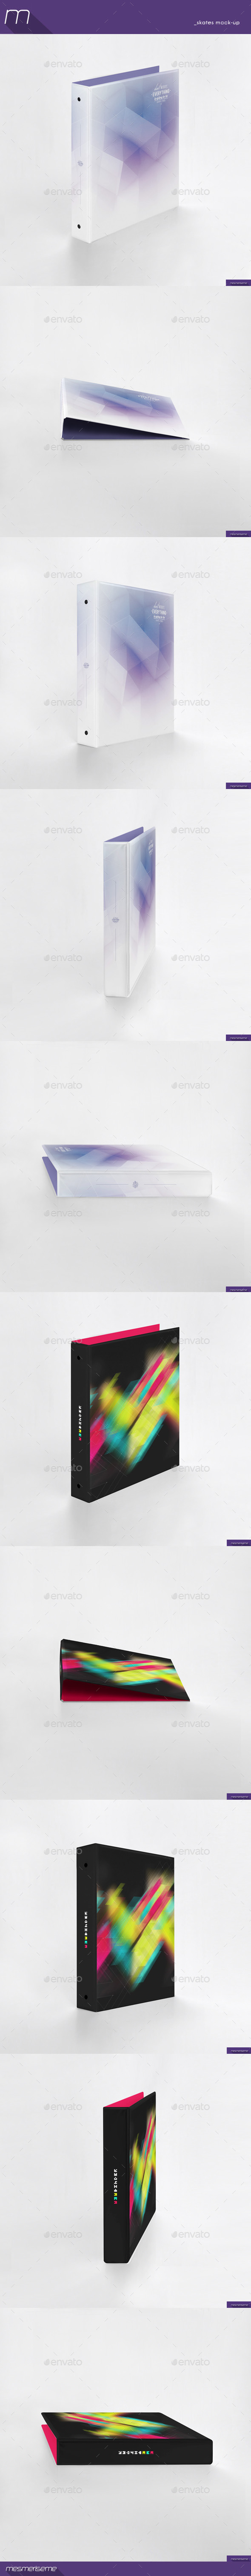 Binder Mock-up (Stationery)